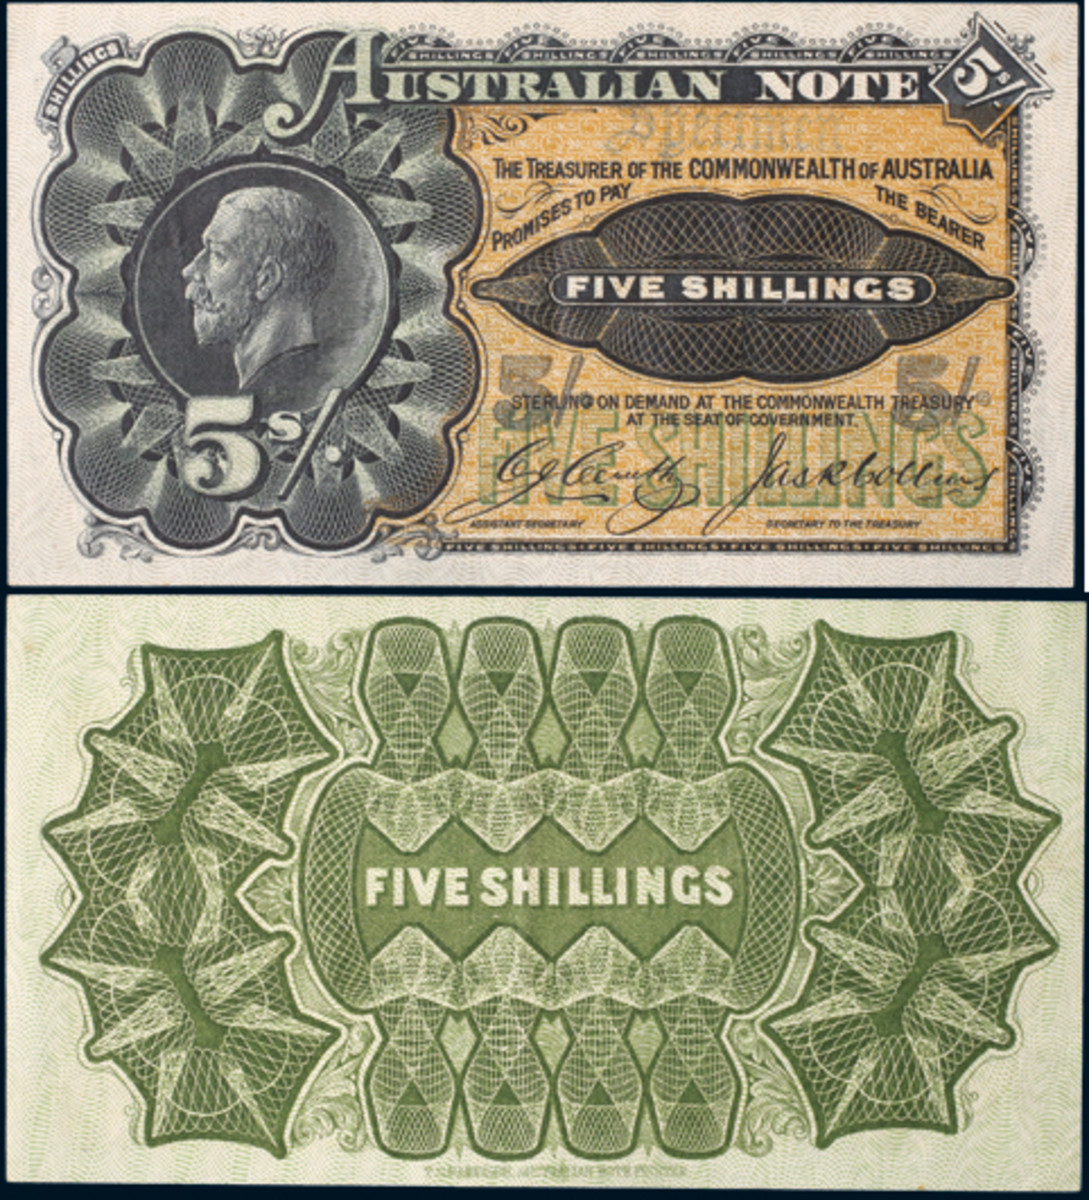 Face and back of the extremely rare specimen Australian 5 shillings note sold by Noble Numismatics in November for $59,422. (Images courtesy Noble Numismatics)